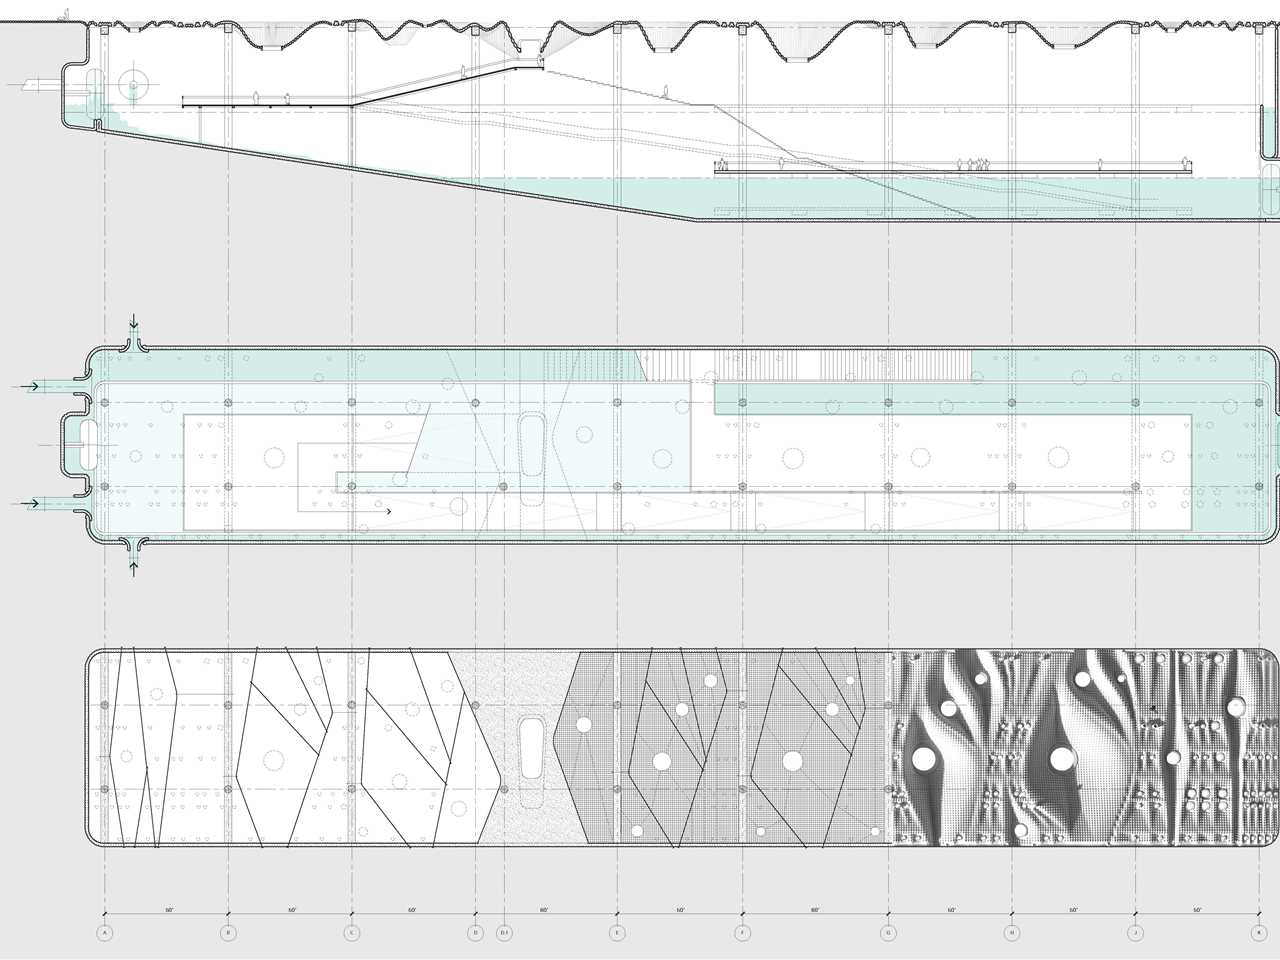 Global finalist entry 2015 - Poreform: Water absorptive surface and subterranean basin